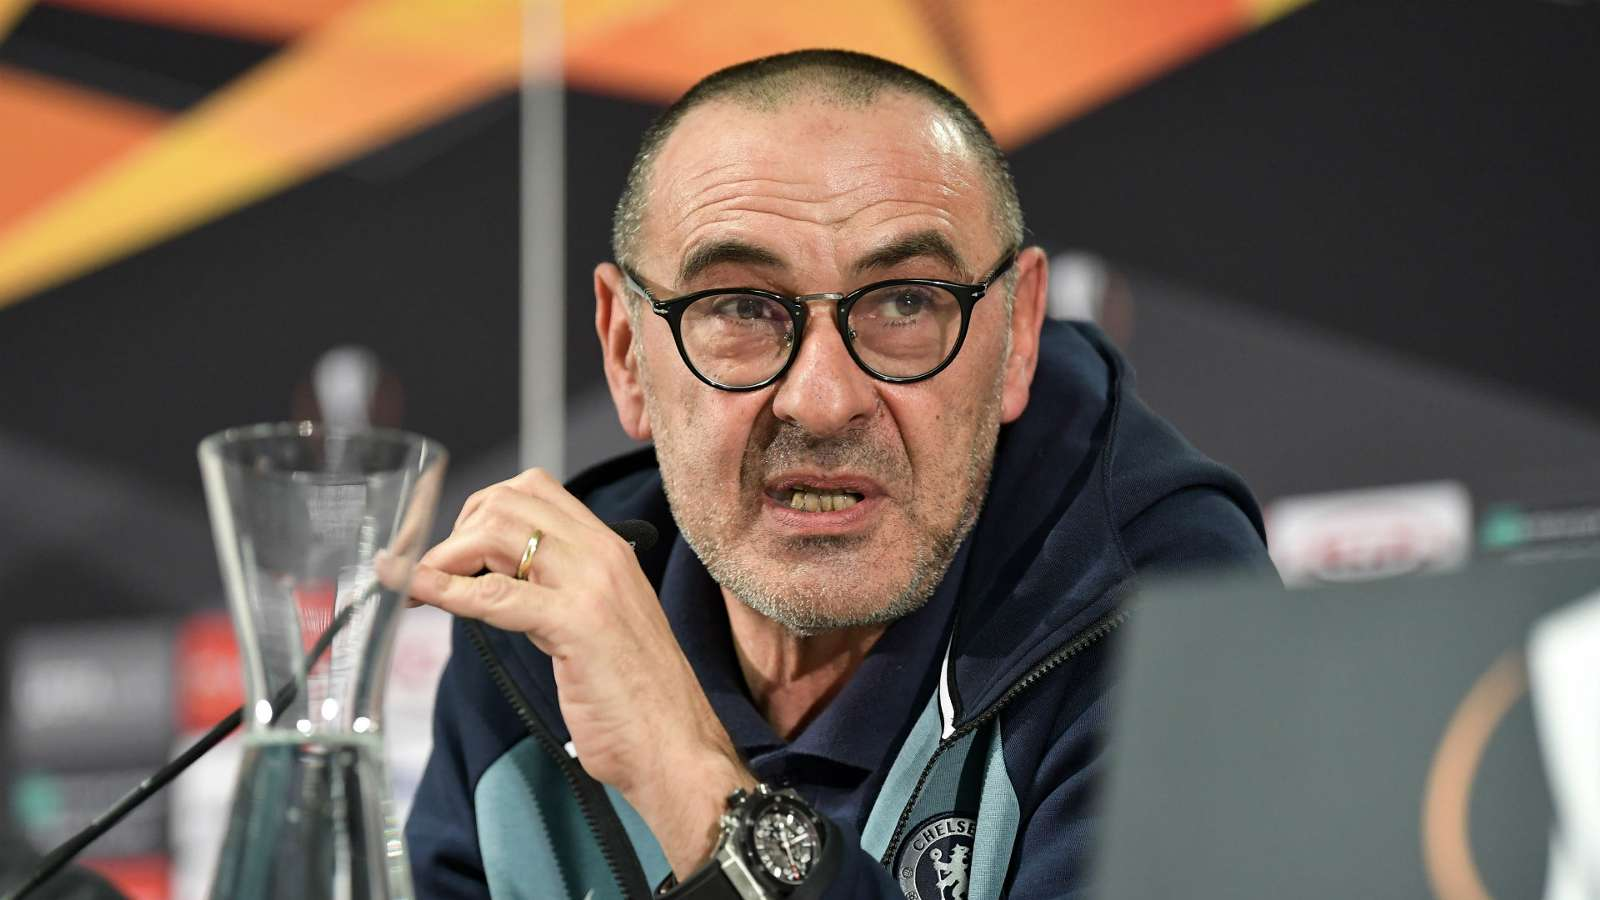 Sarri: Chelsea Can't Close Gap At Top Now, Tough To Improve With Transfer Ban